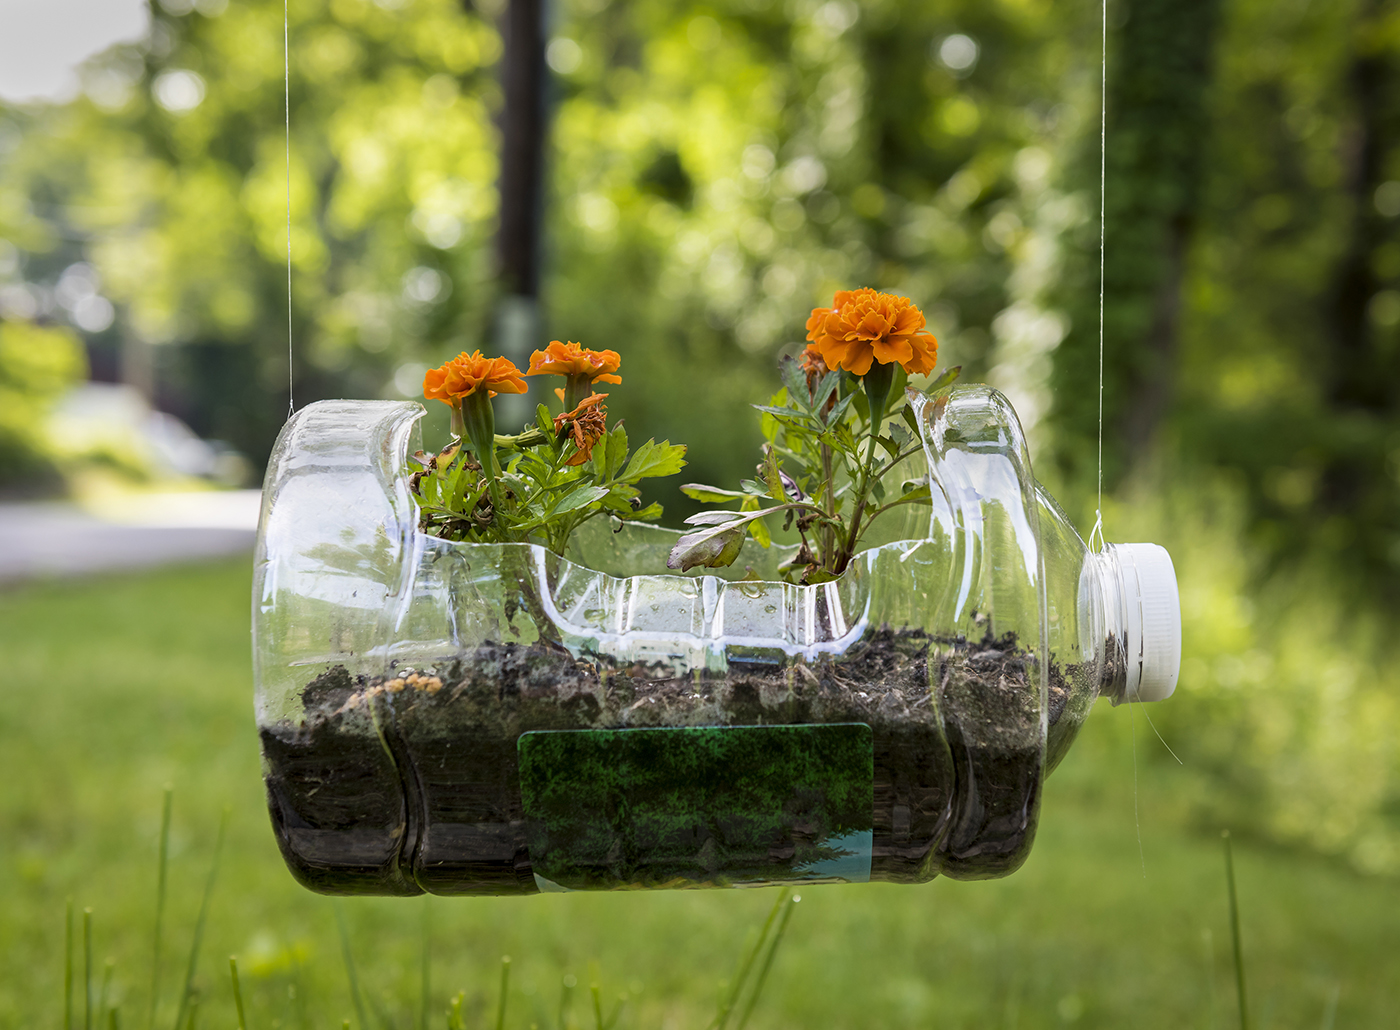 Home Gardening Ideas Using Recycled Materials